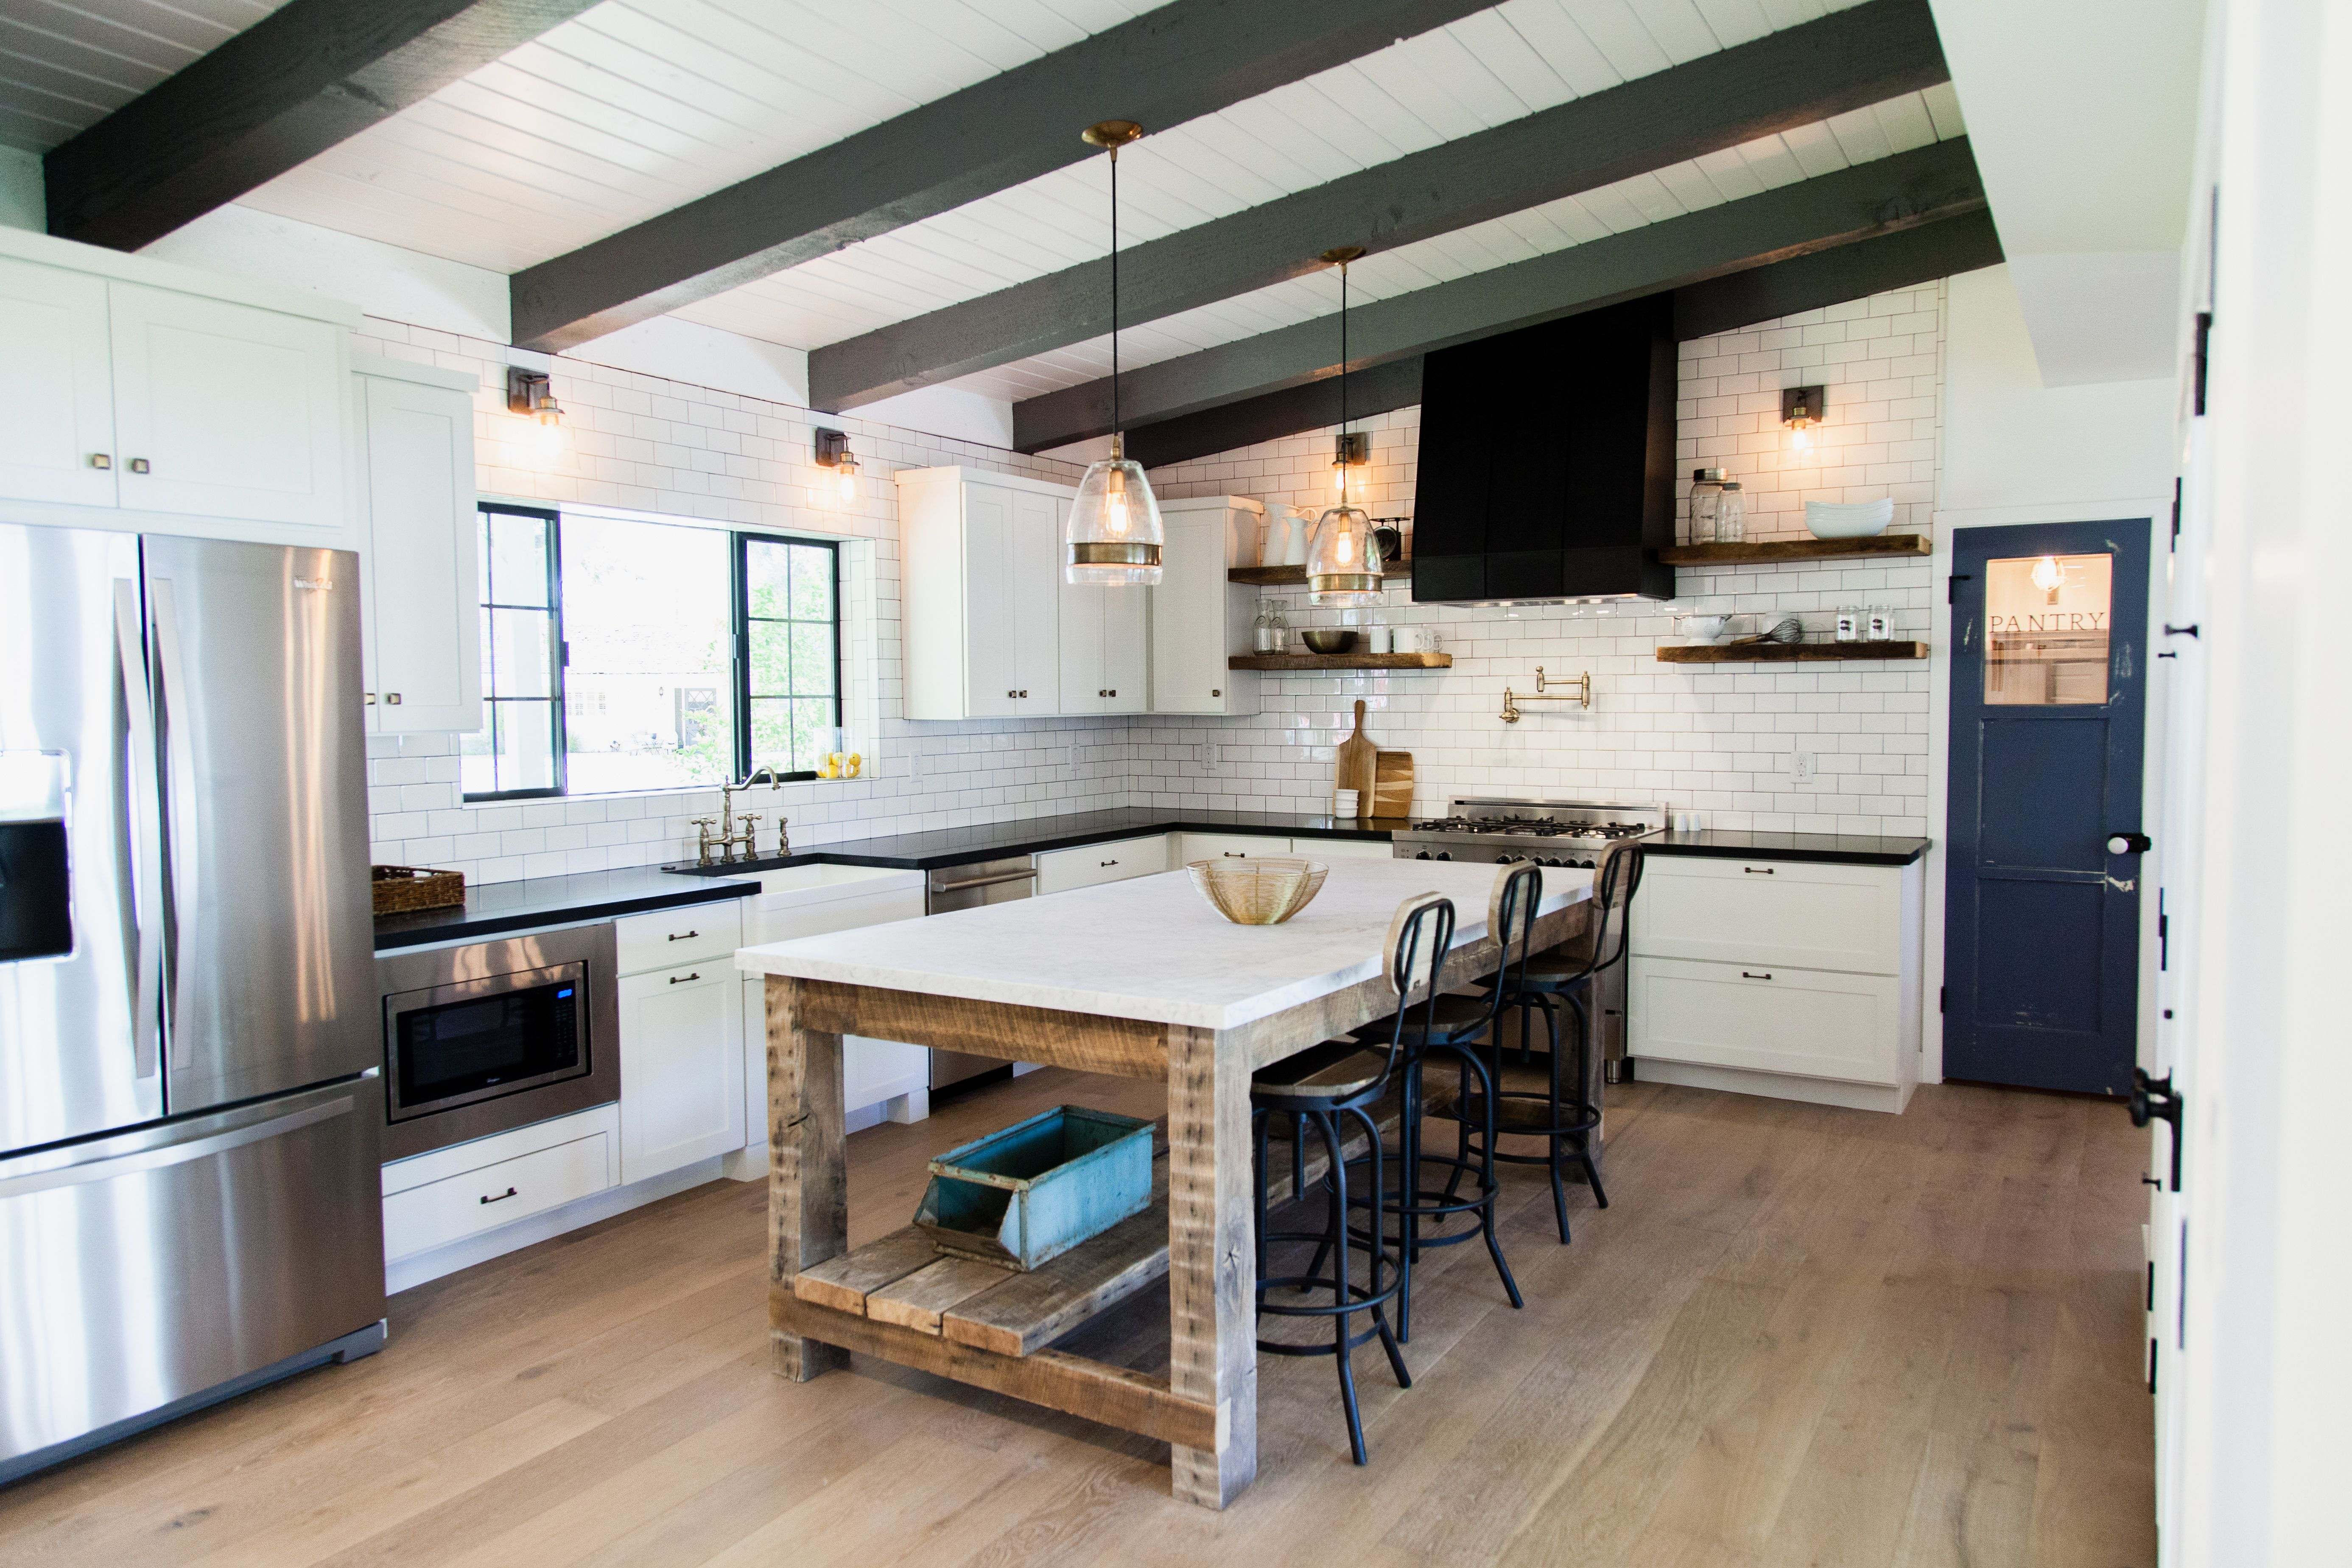 Custom Barn Wood Island With Carrara Marble Counter Top By Rafterhouse Freestanding Kitchen Island Country Kitchen Countertops Freestanding Kitchen